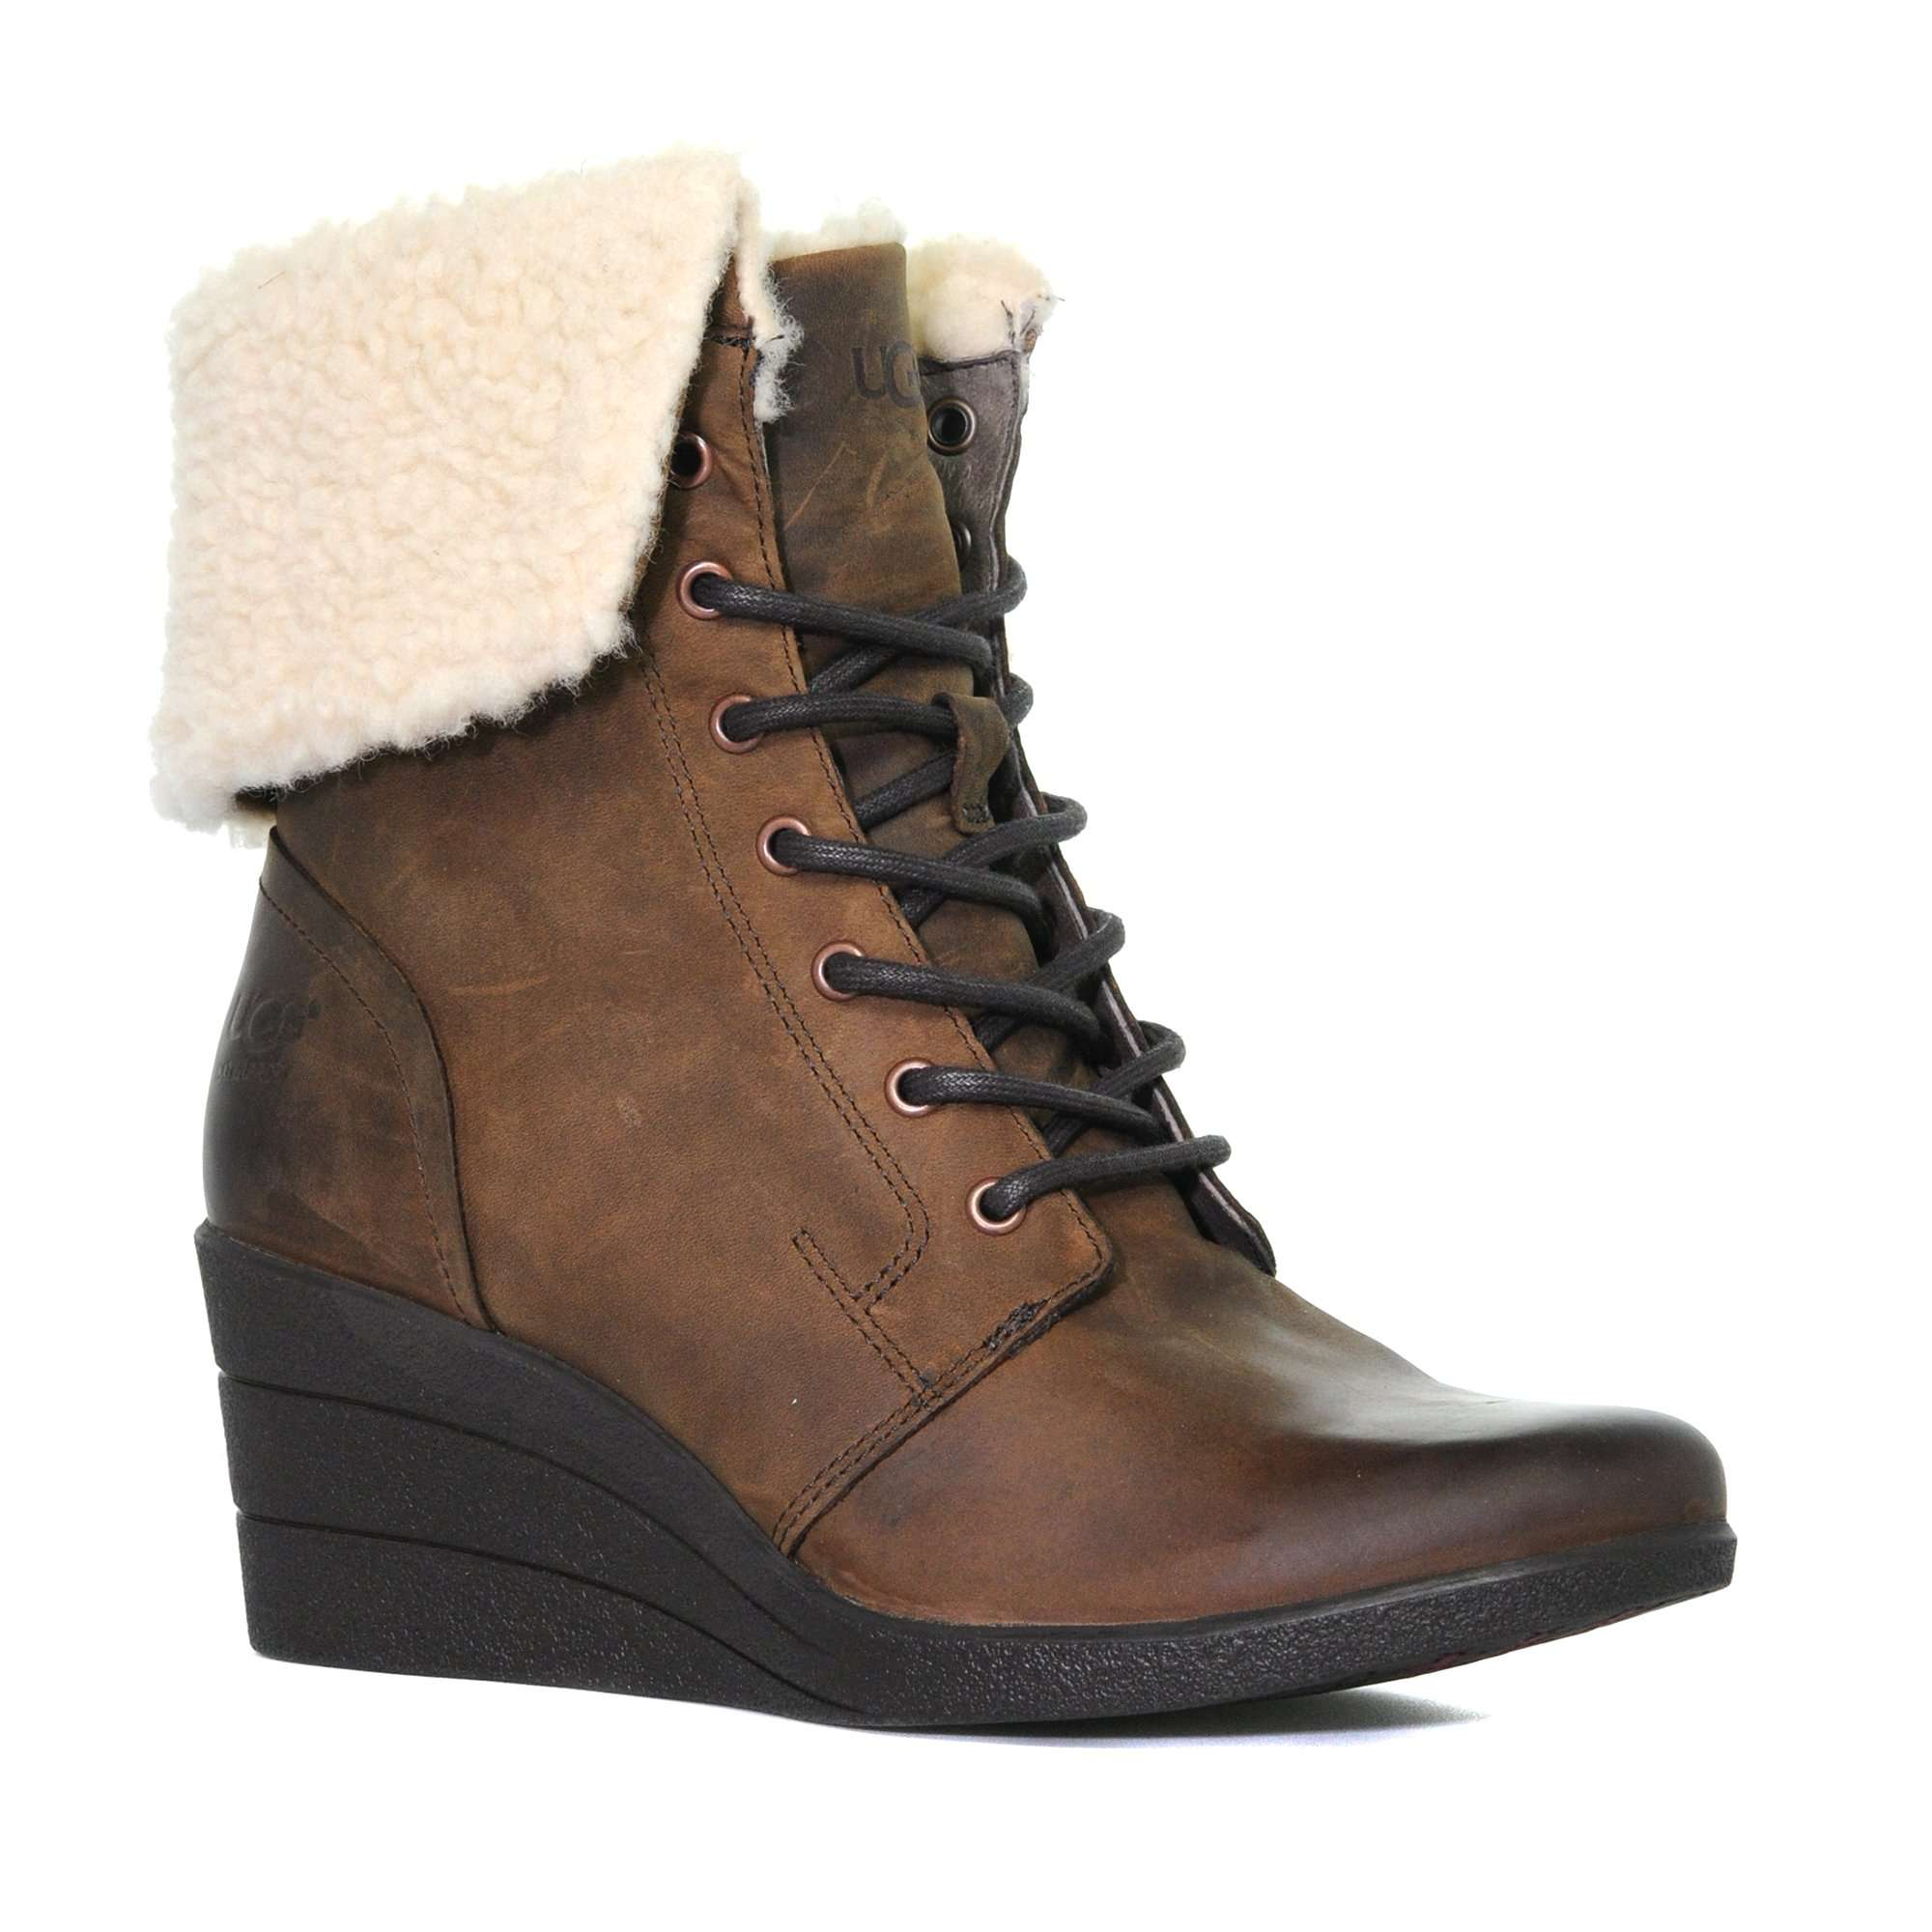 UGG Women's Zea Leather Ankle Boot